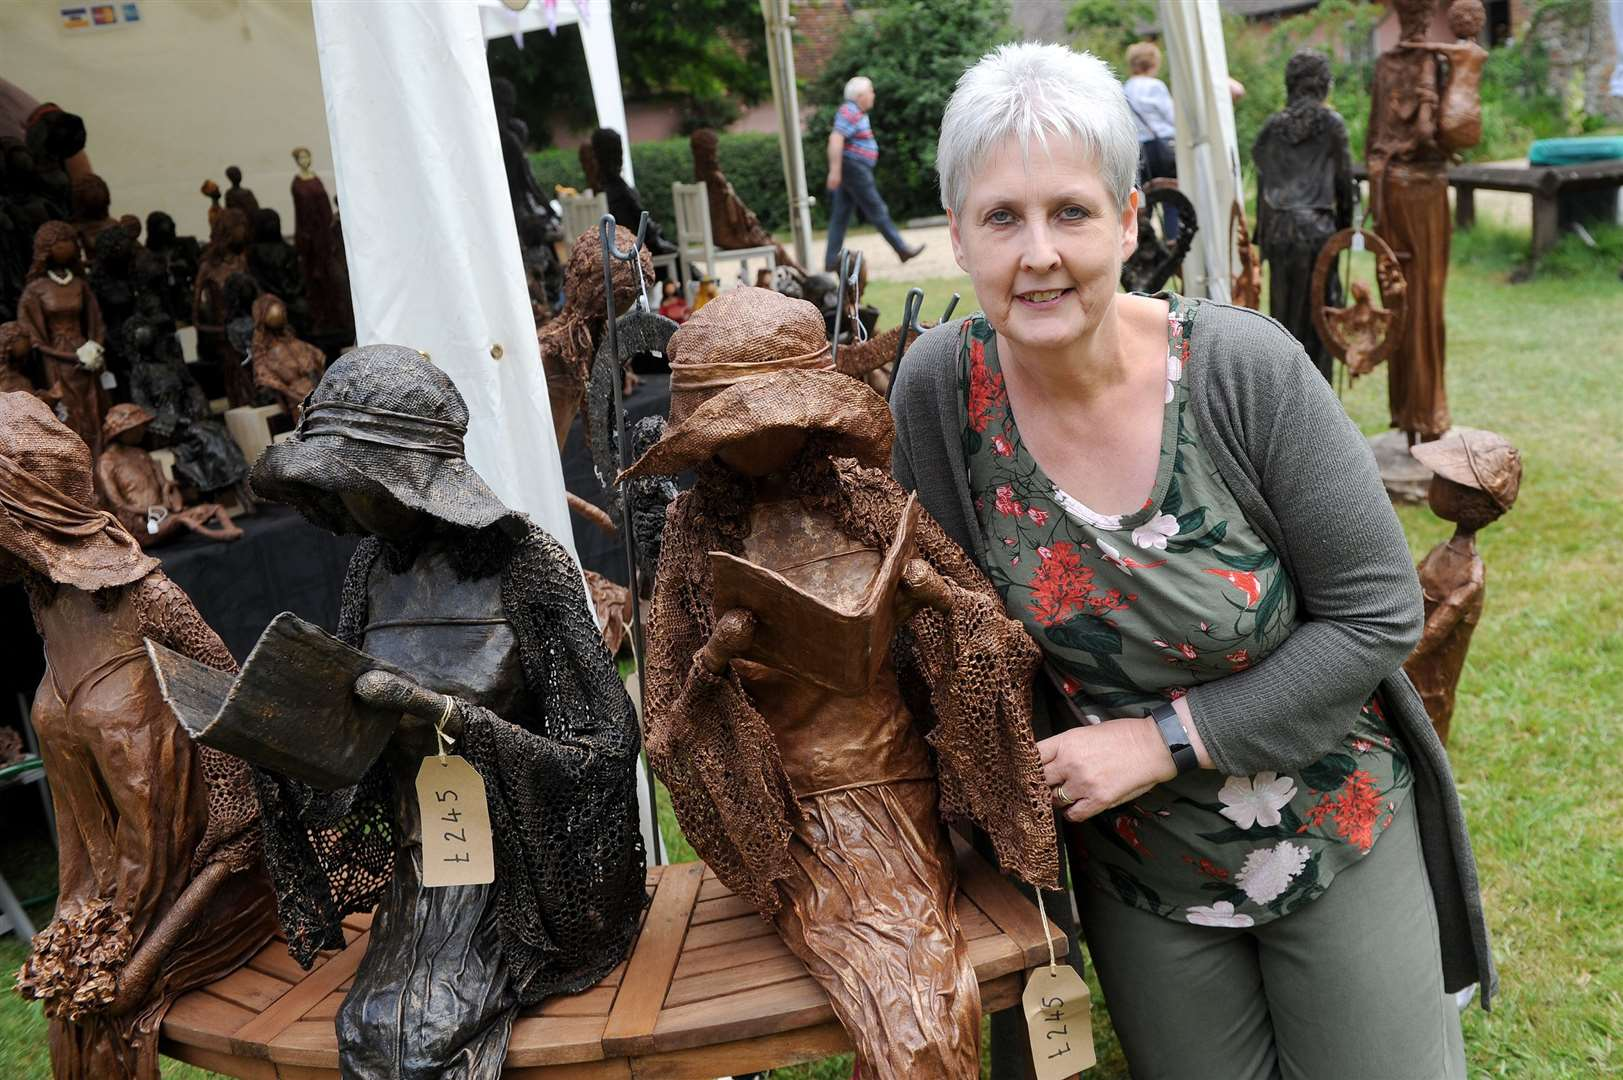 Clare Priory Craft Fair 2019..Pictured: Carole Wright with her sculptures 'Works in Materials'...PICTURE: Mecha Morton. (13785396)